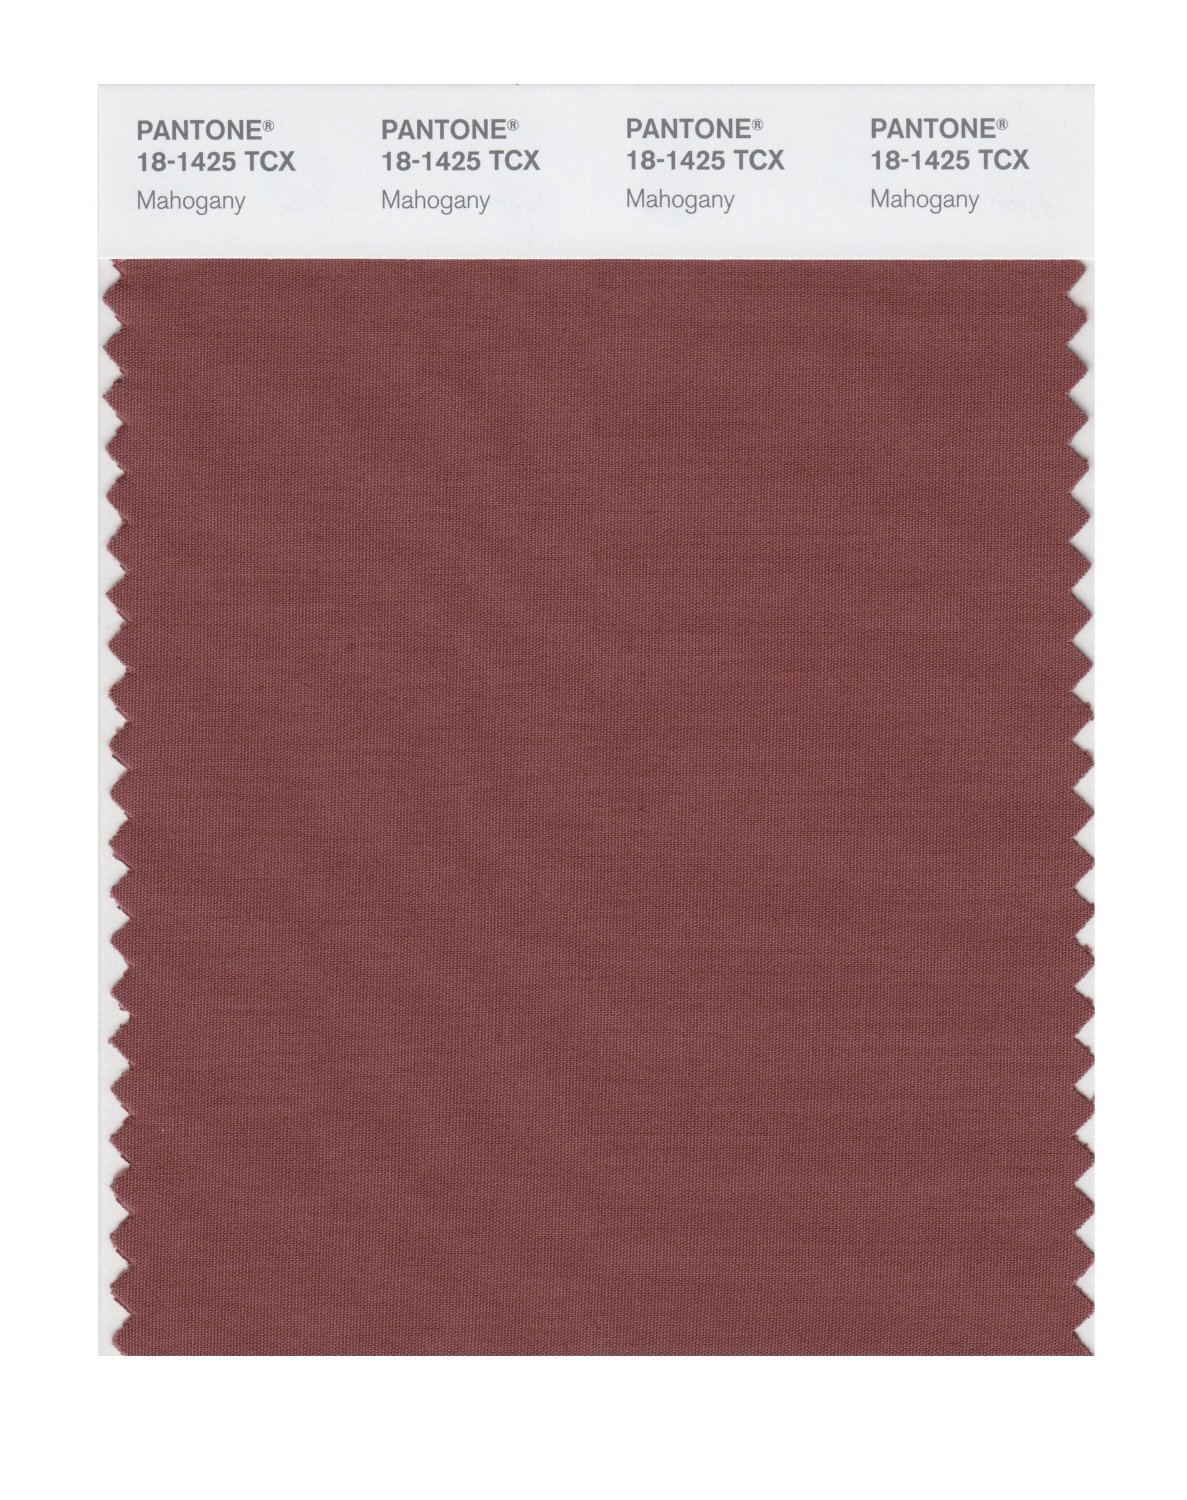 Pantone Smart Swatch 18-1425 Mahogany